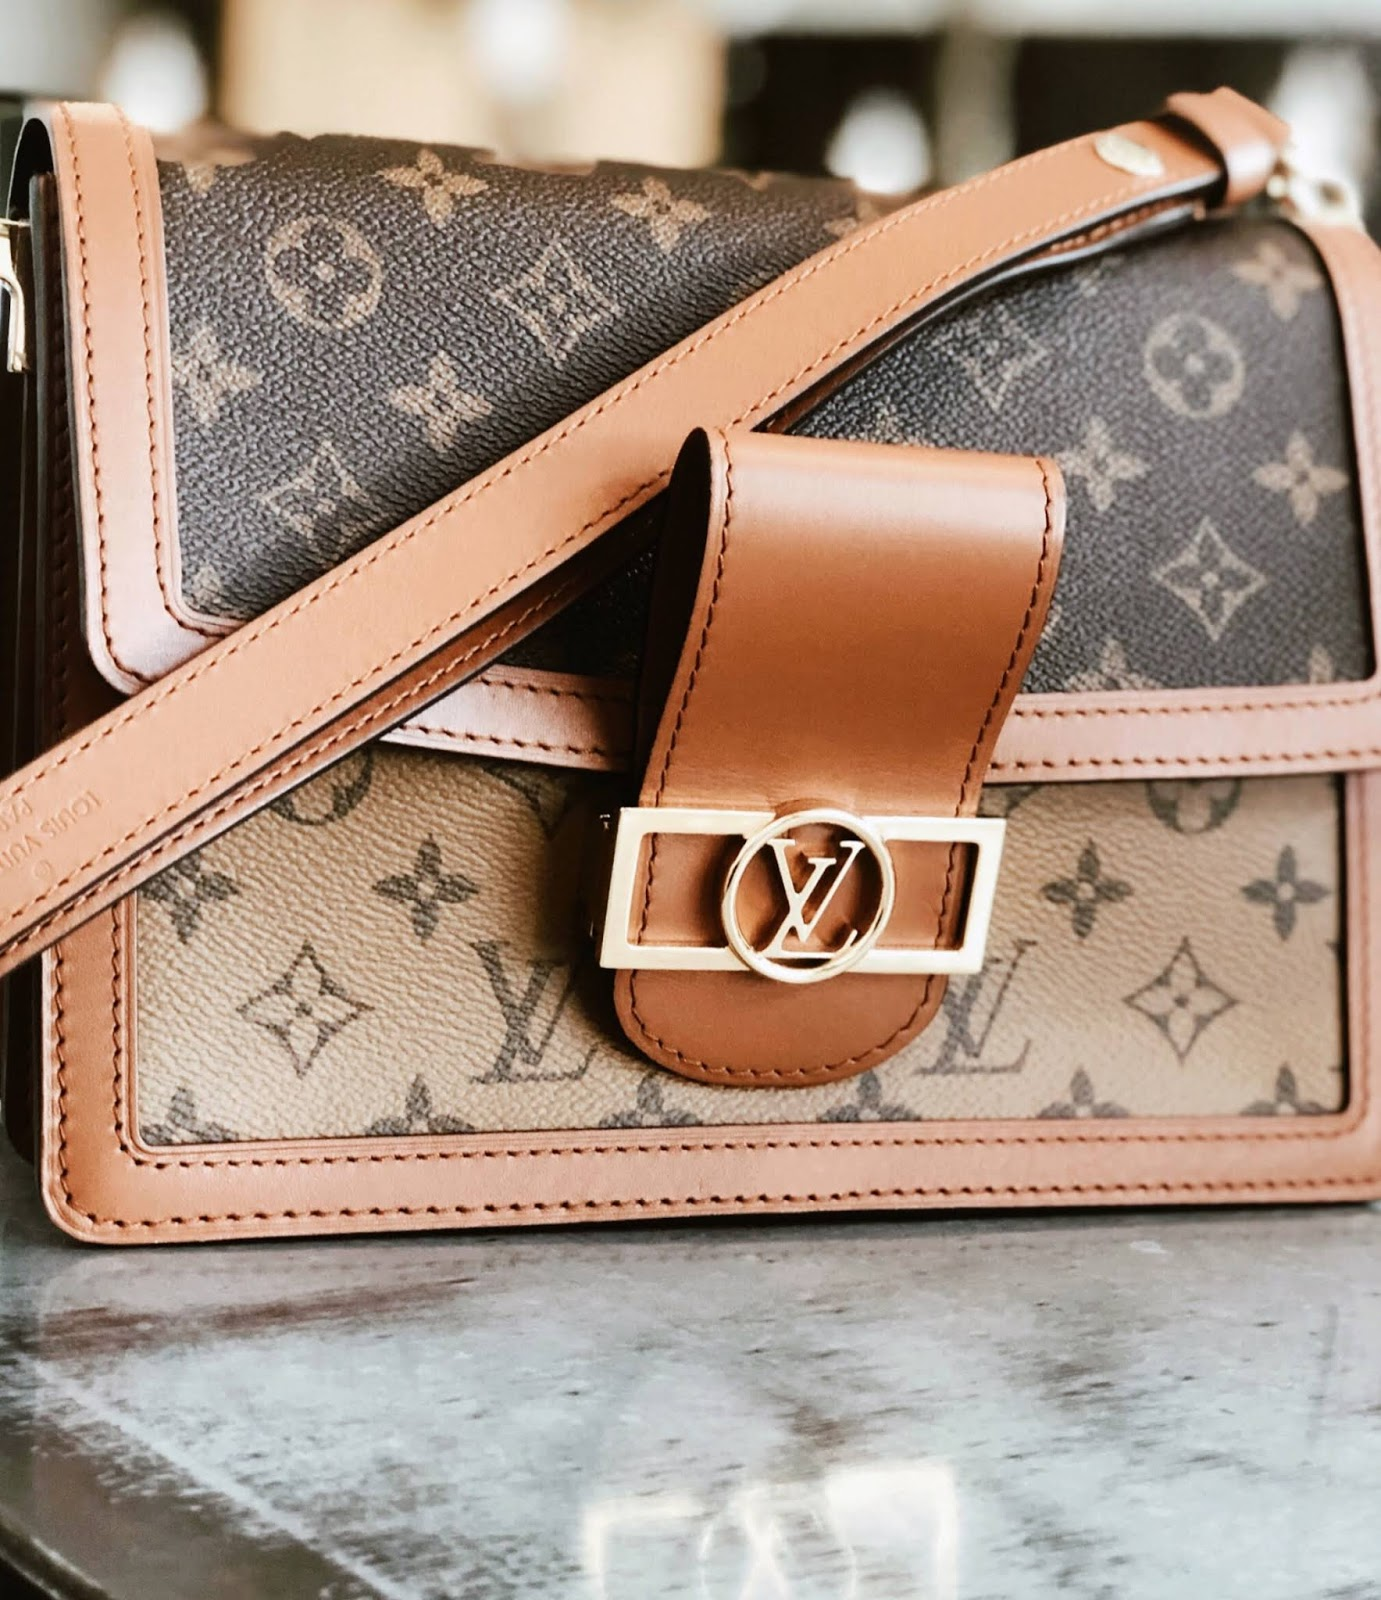 Louis Vuitton Dauphine MM Bag : Luxury Reveal https://www.ourdubailife.com